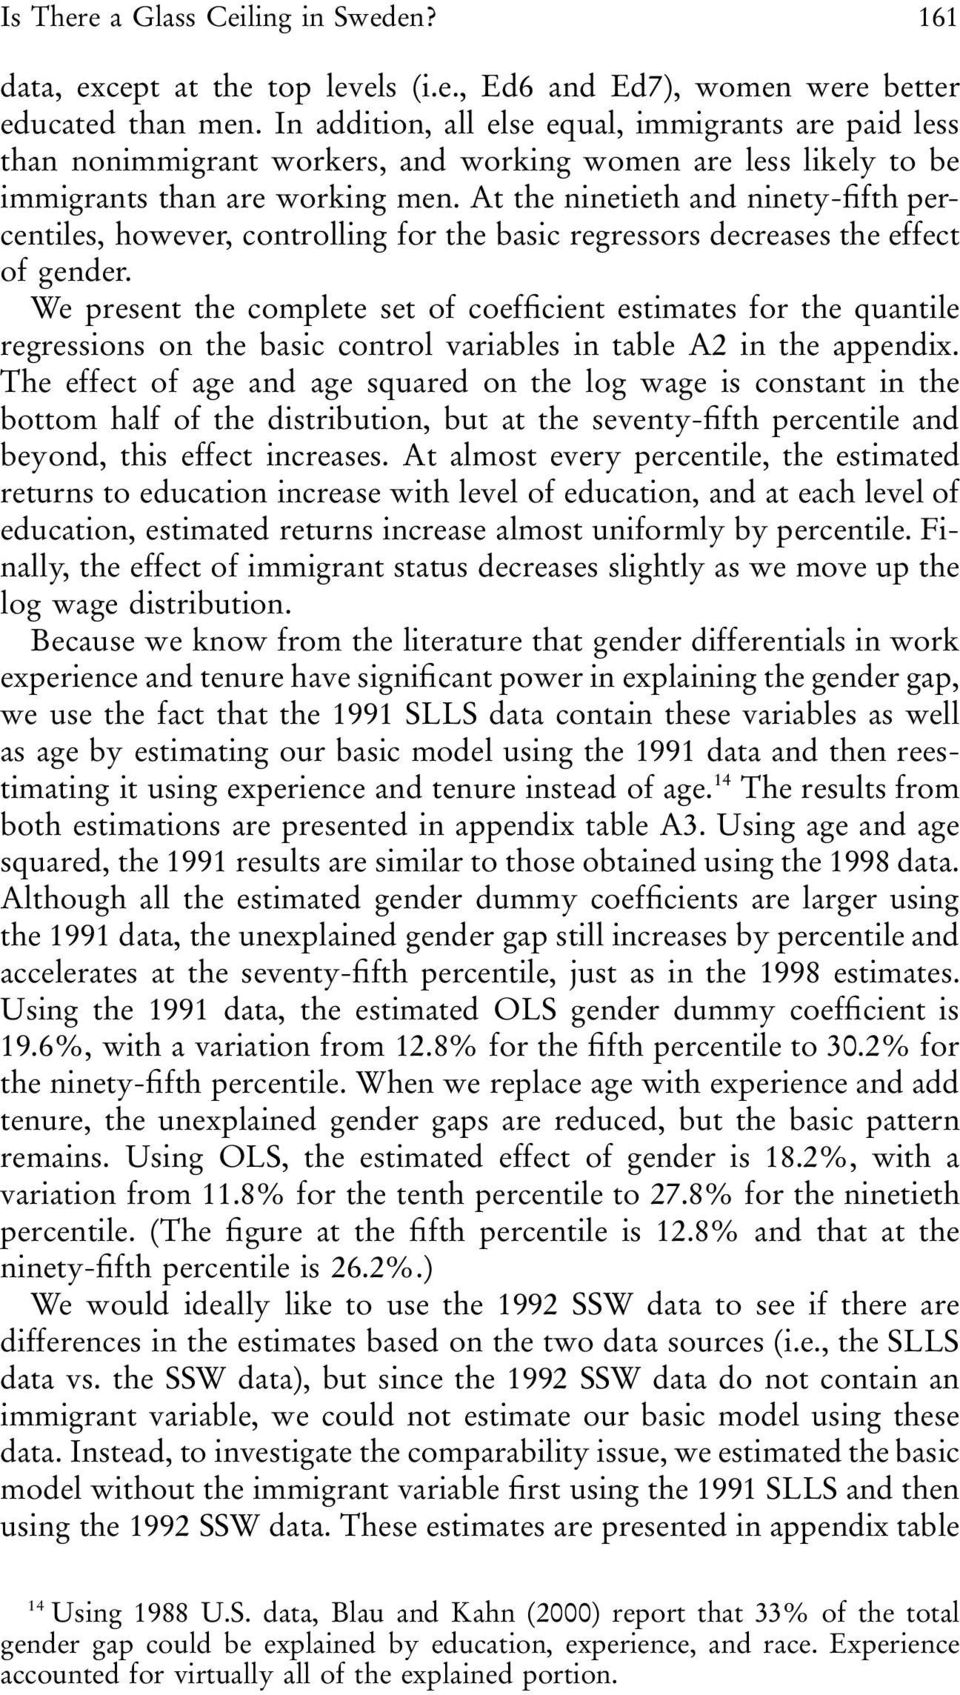 At the ninetieth and ninety-fifth percentiles, however, controlling for the basic regressors decreases the effect of gender.